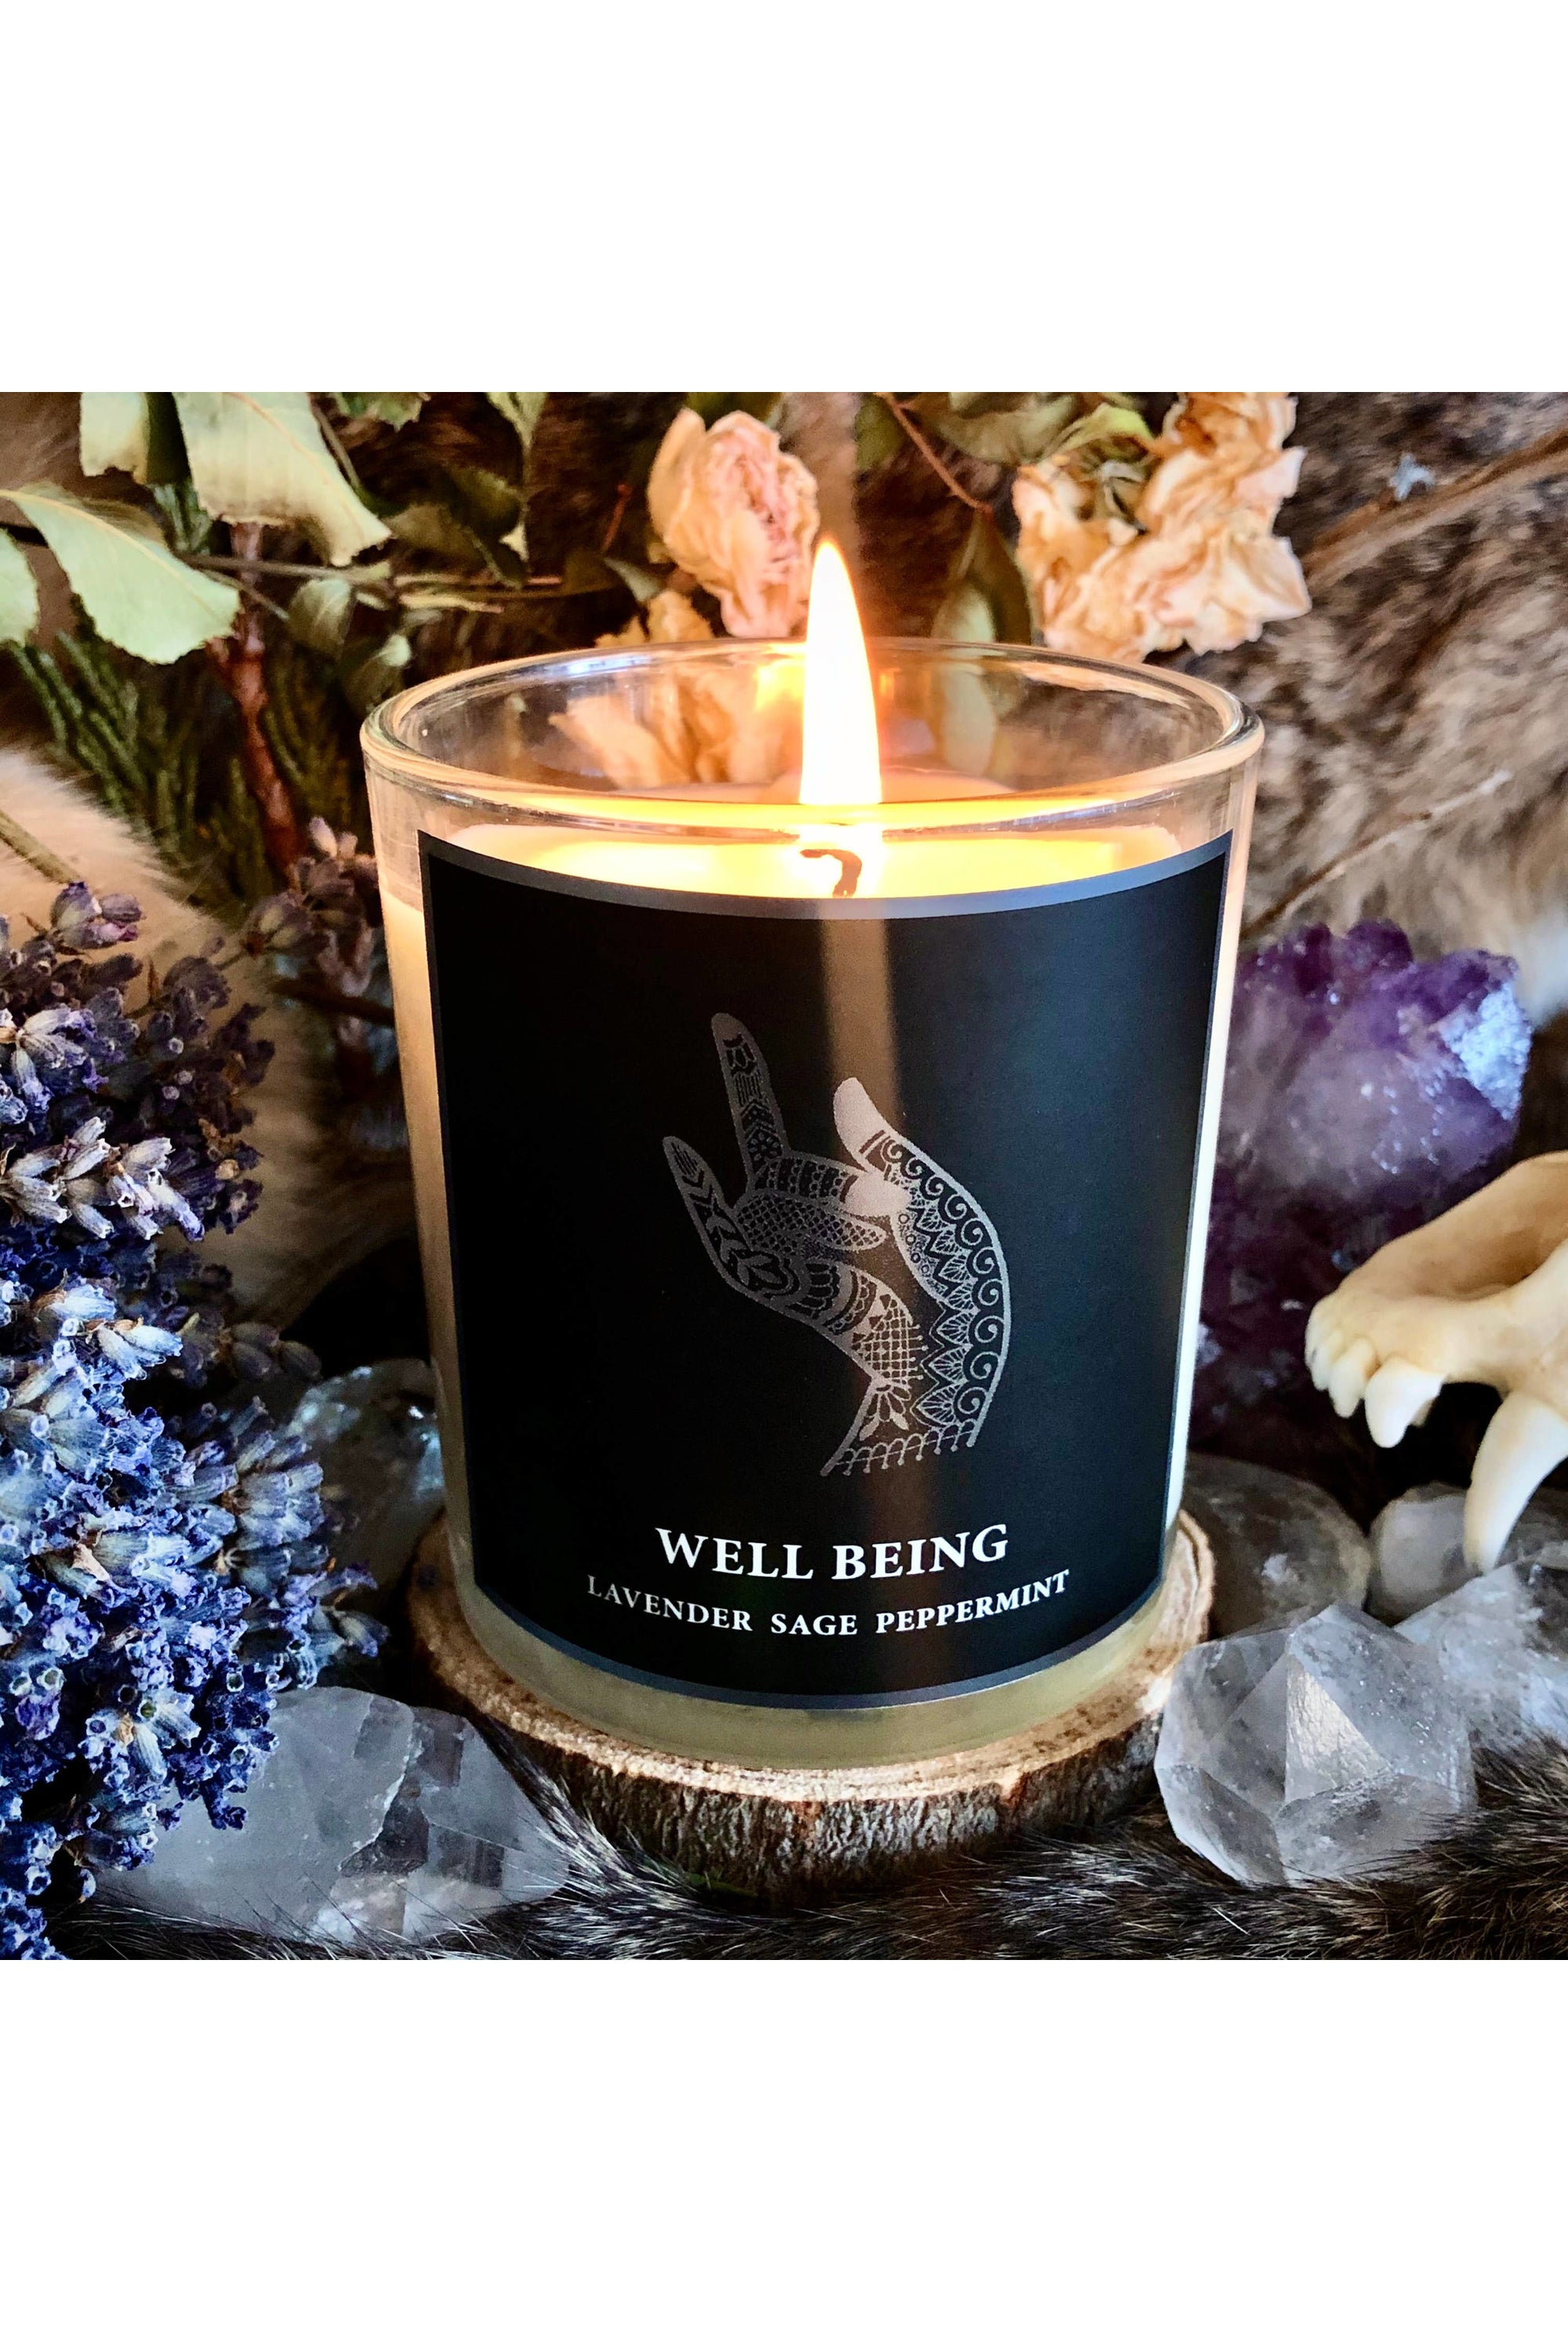 Magic Fairy Candles - 8.5oz Well Being Candle